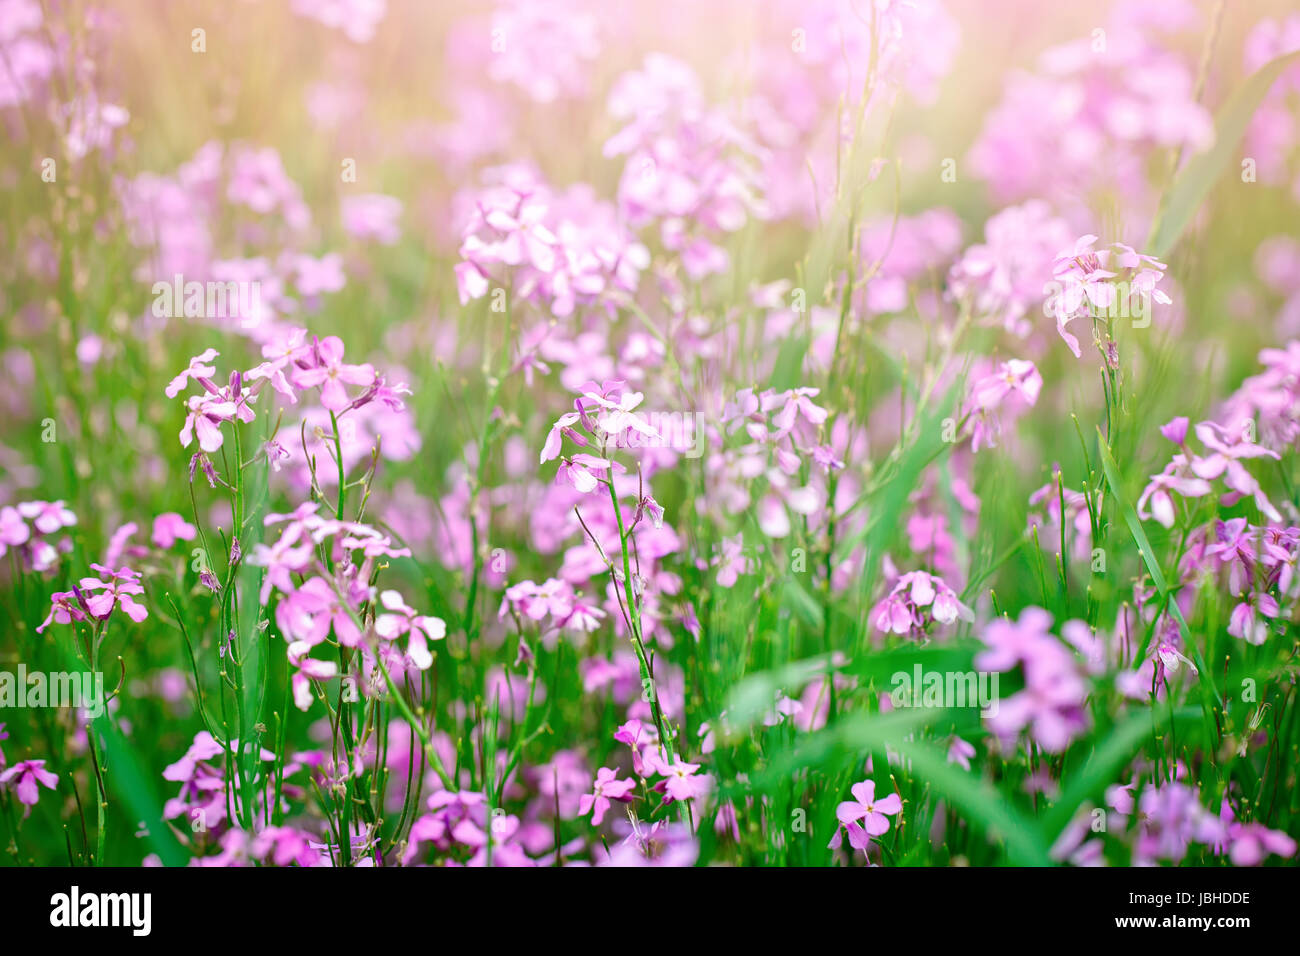 Beautiful wild flowers in the green grass year field stock photo beautiful wild flowers in the green grass year field izmirmasajfo